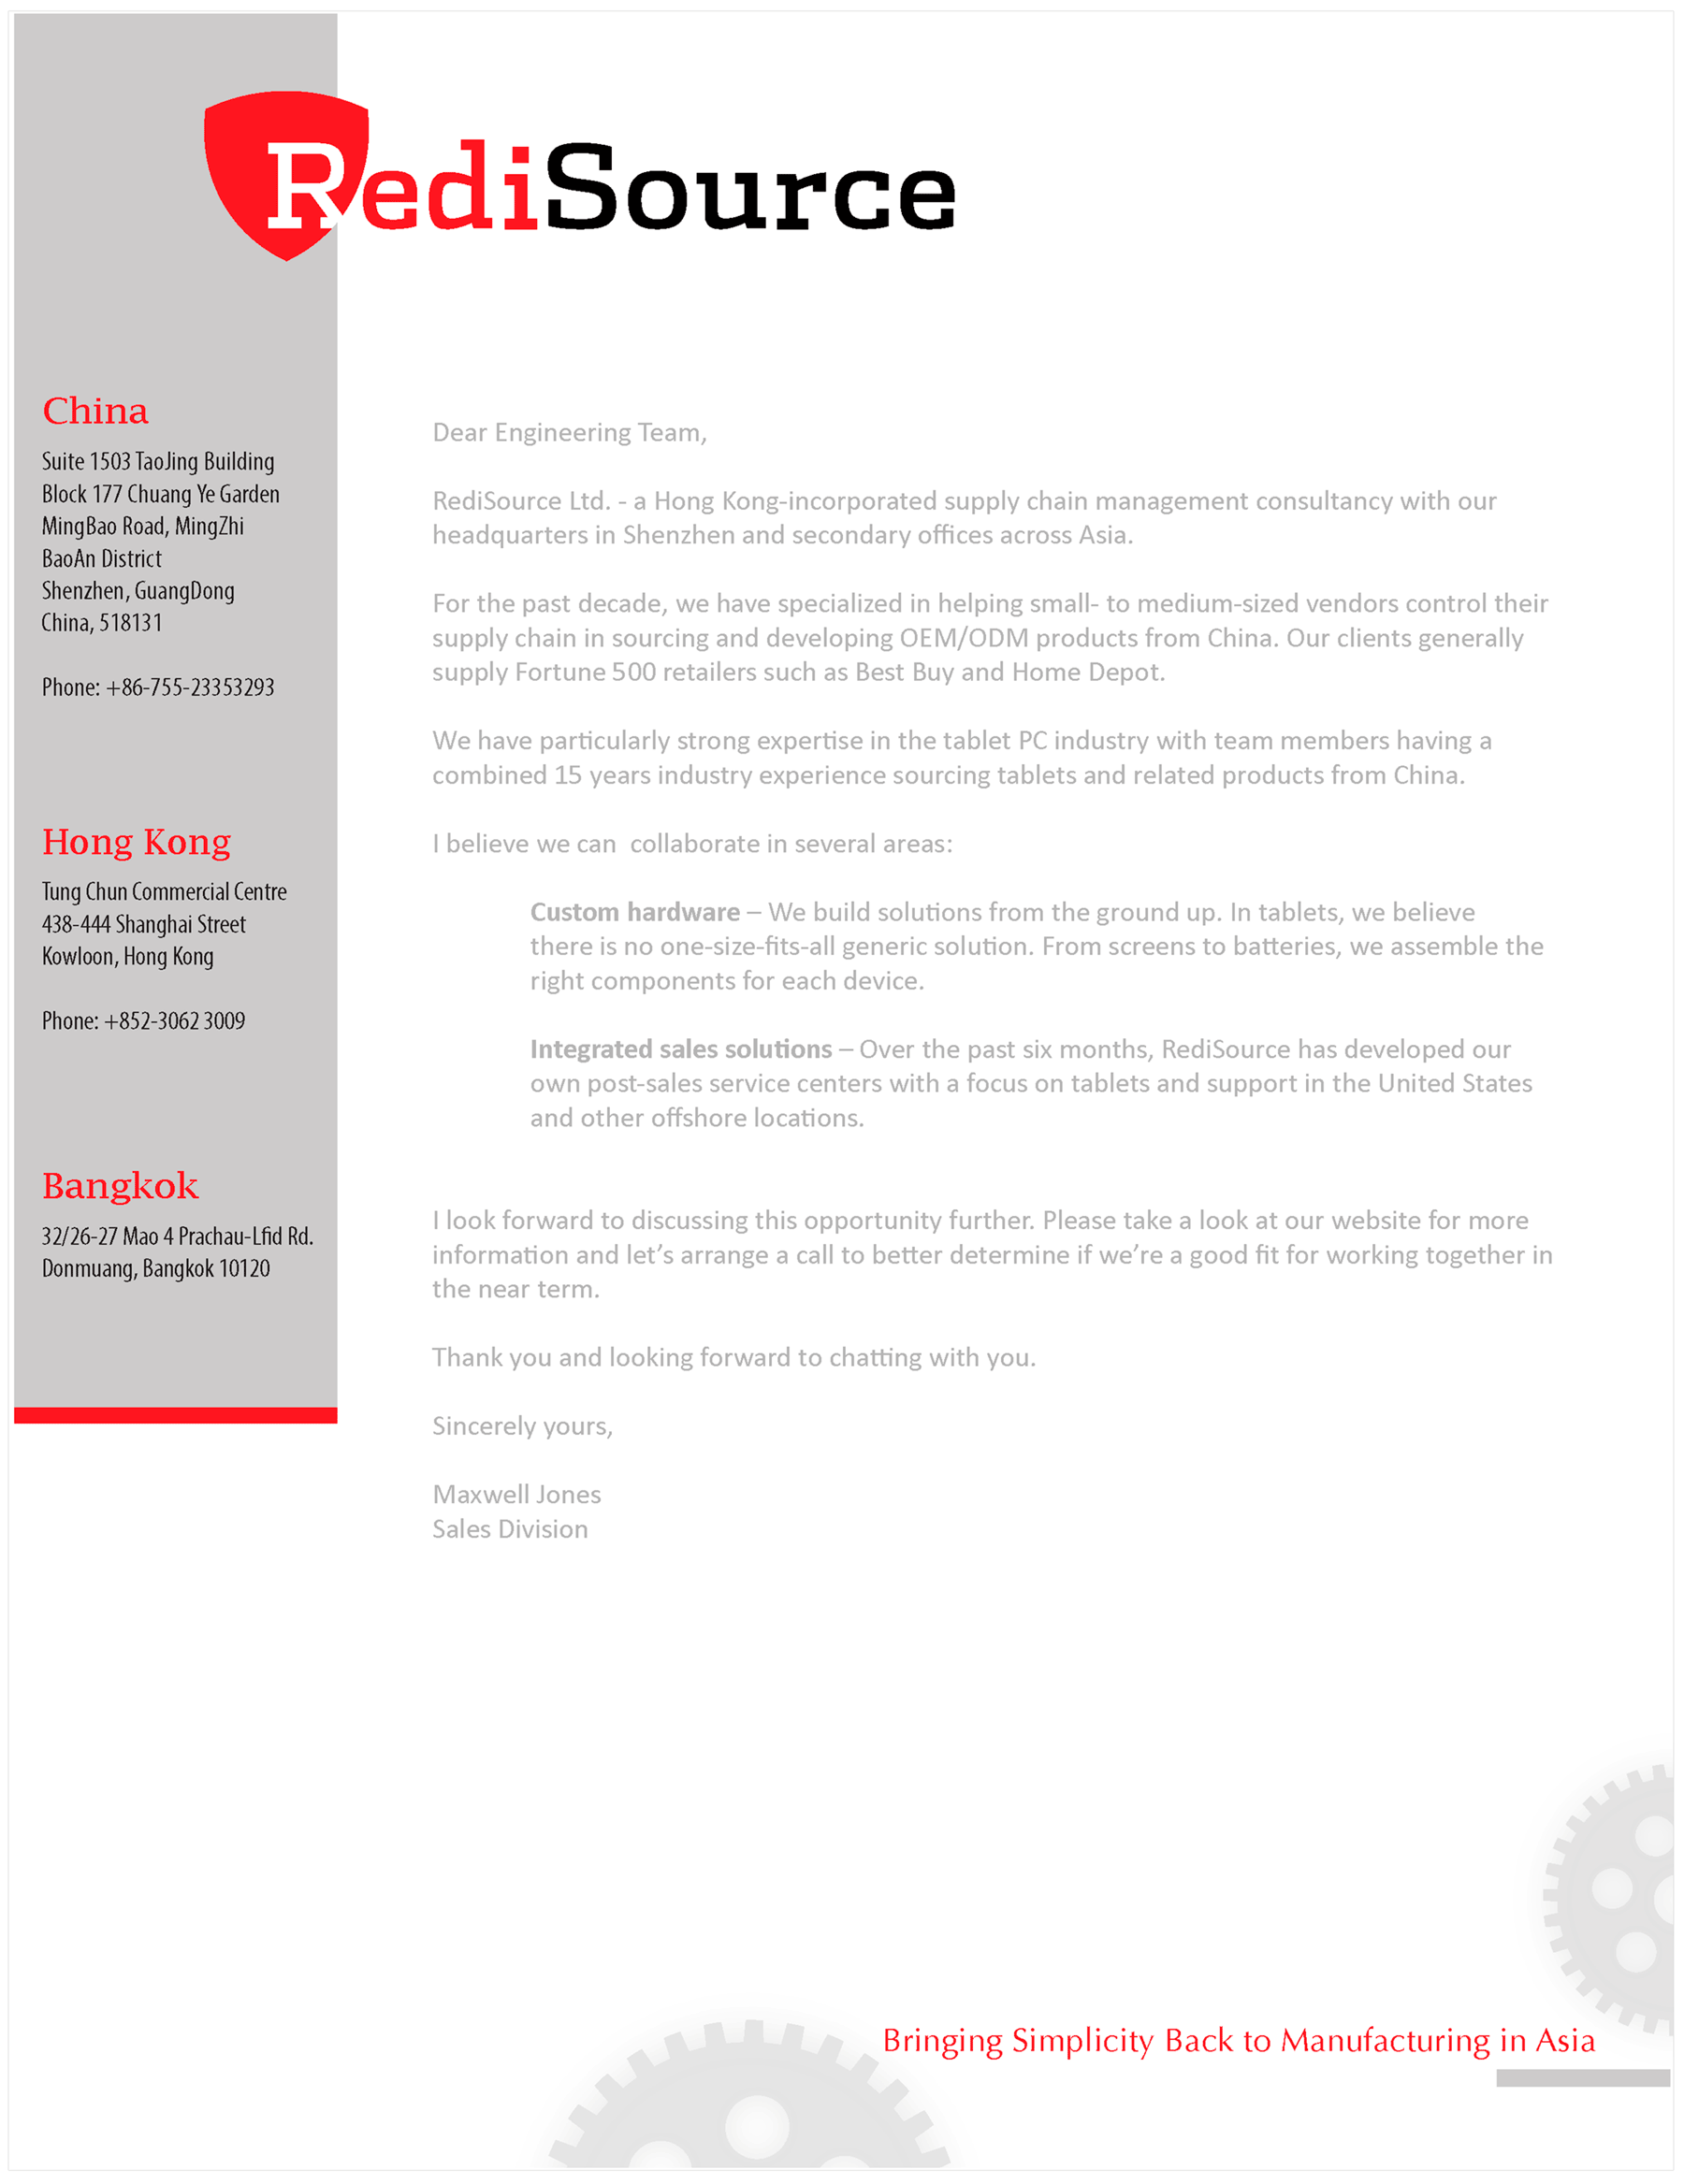 RediSource Letterhead